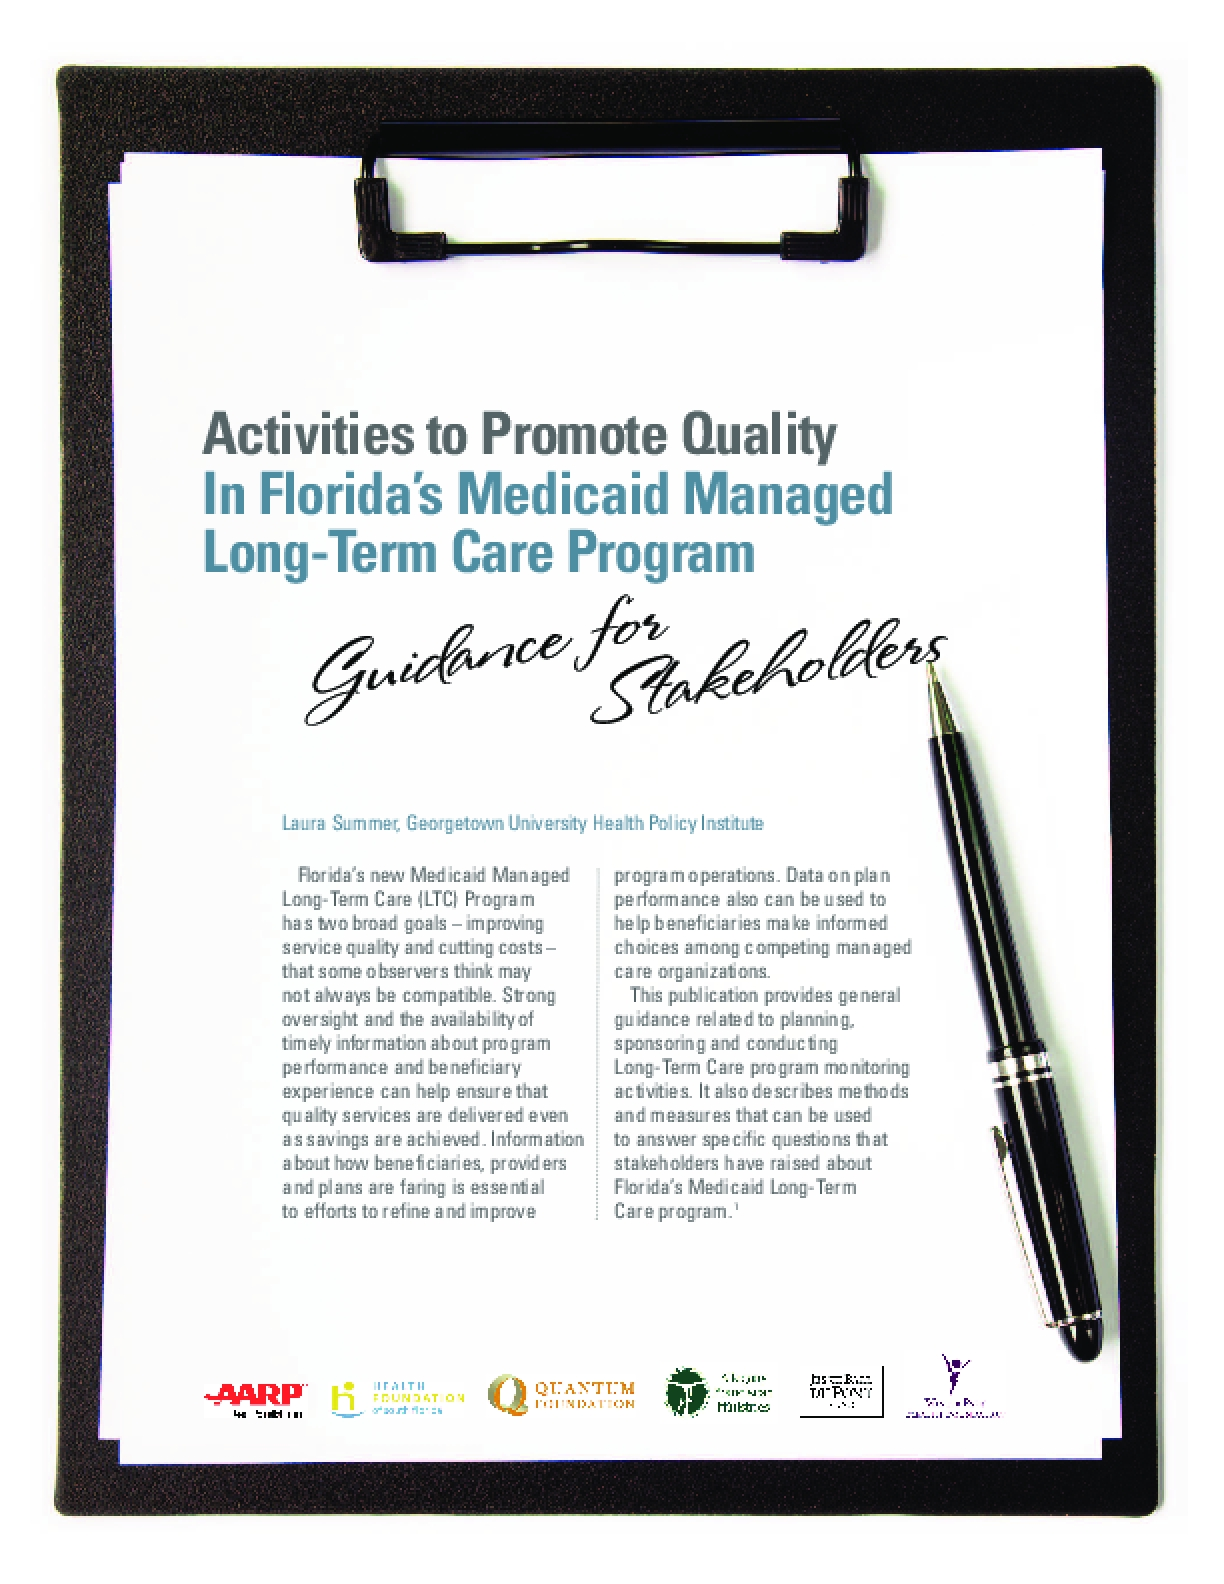 Activities to Promote Quality In Florida's Medicaid Managed Long-Term Care Program